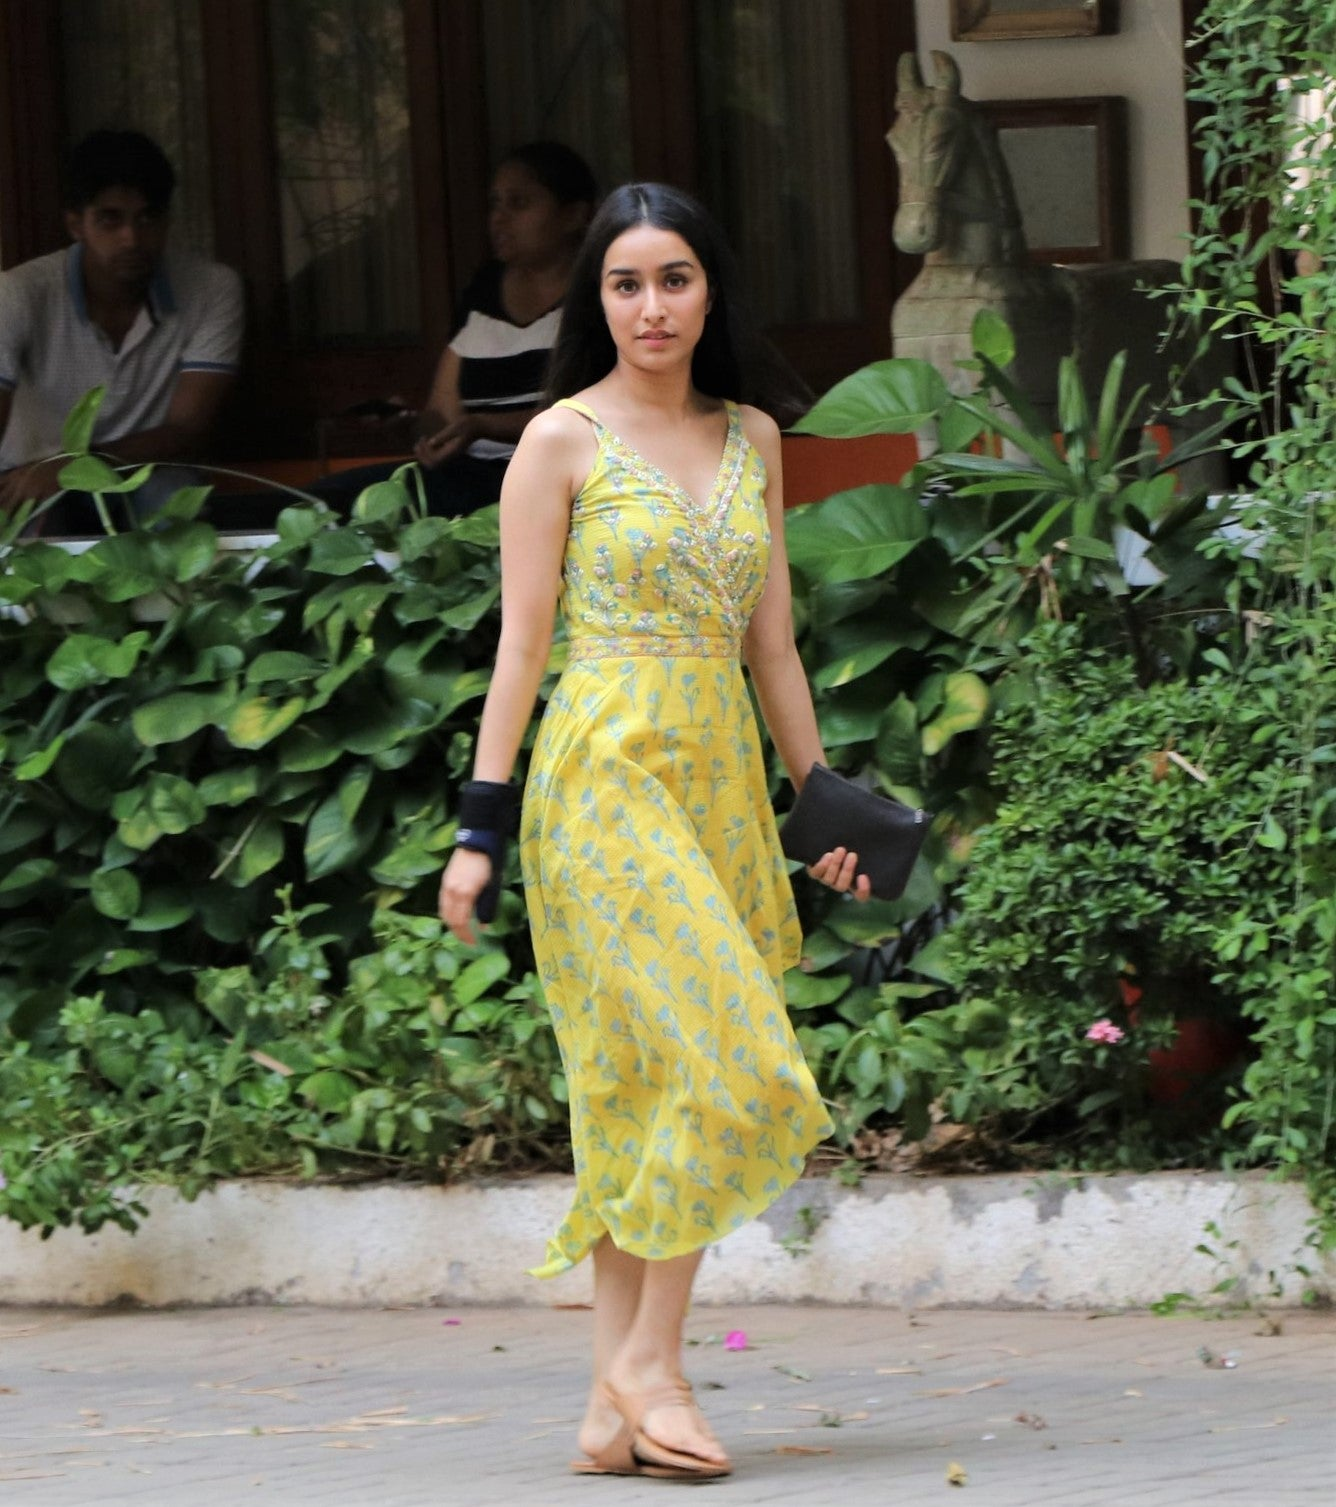 Shraddha Kapoor in Beautiful Floral Printed Midi Dress from Anita Dongre's Collection